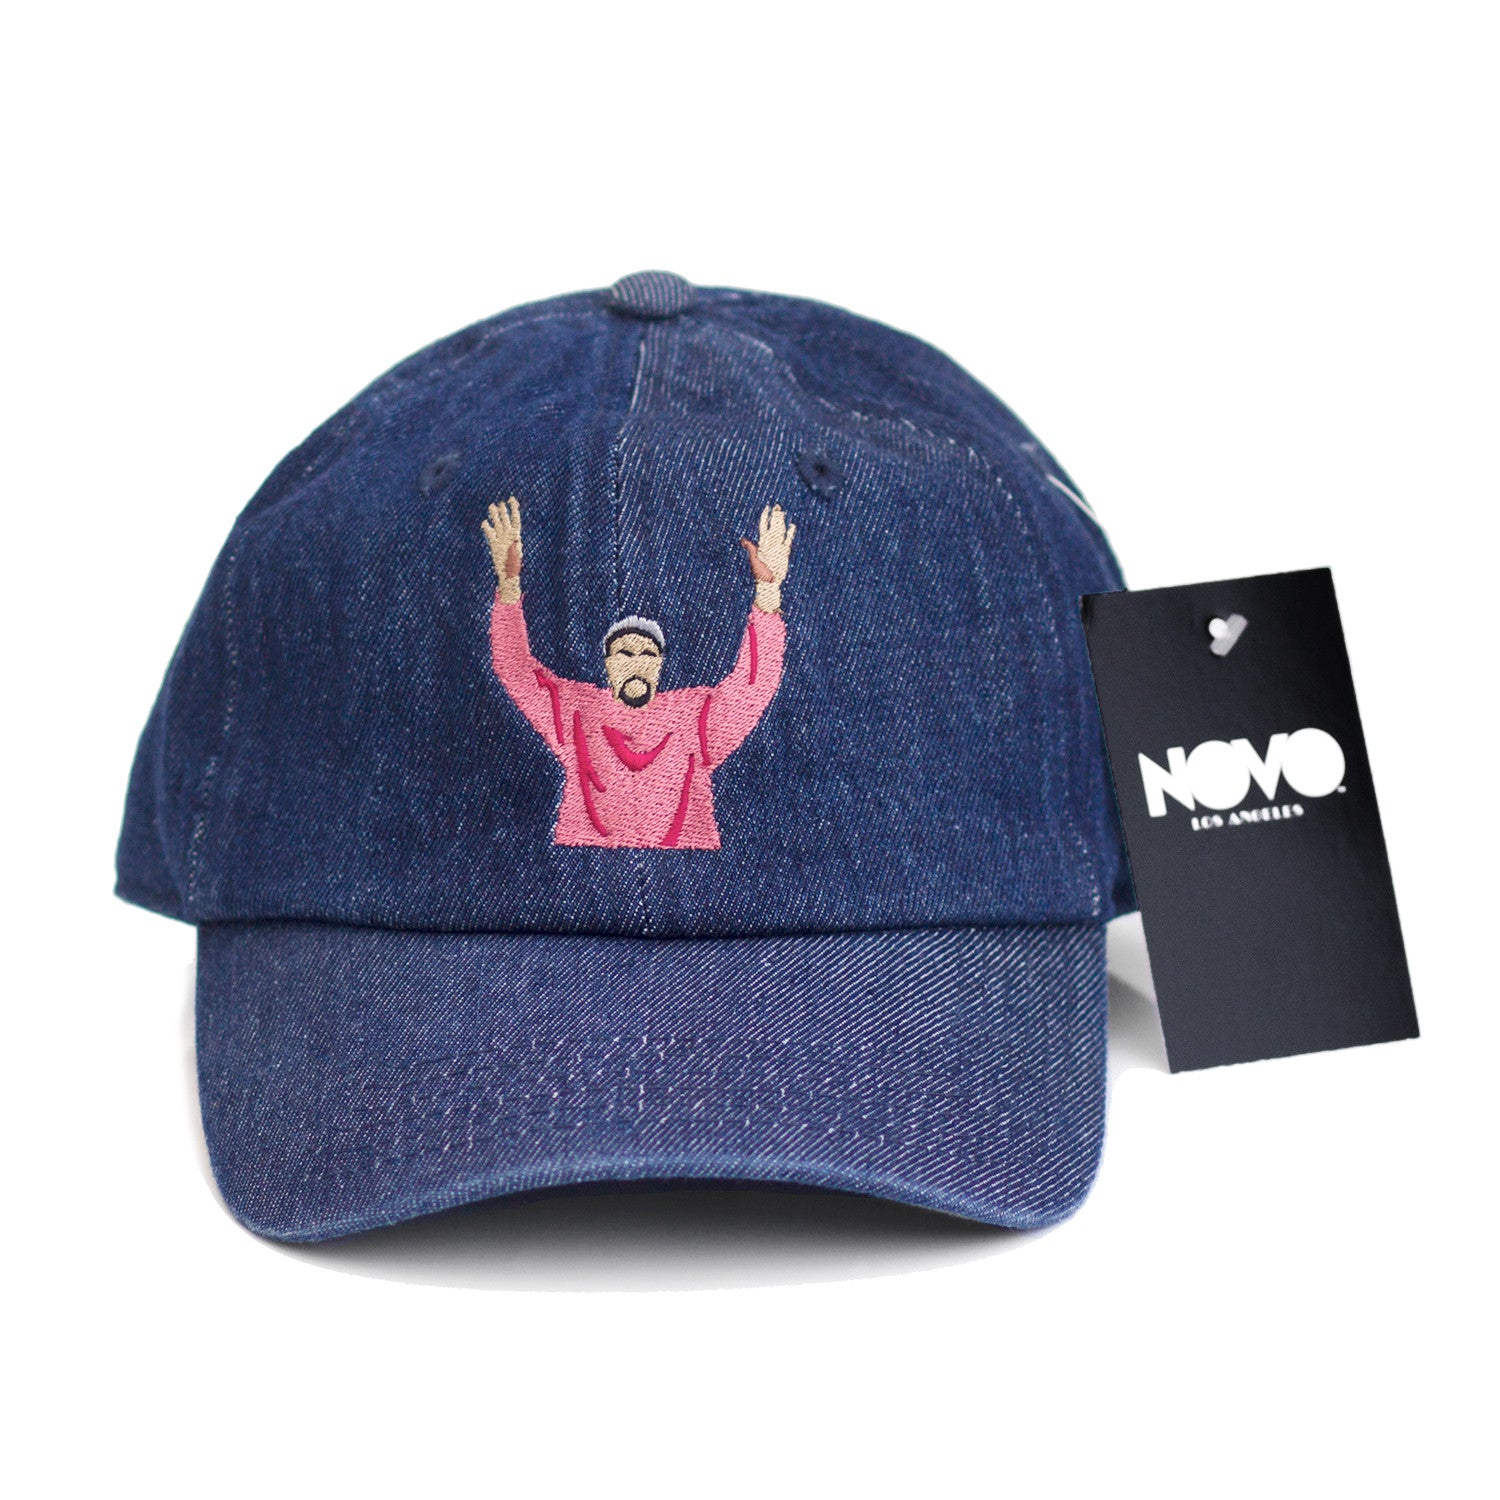 Kanye at Madison Square Garden Dad Hat - Dark Blue Denim – NOVOLOSANGELES 7f335bebf62